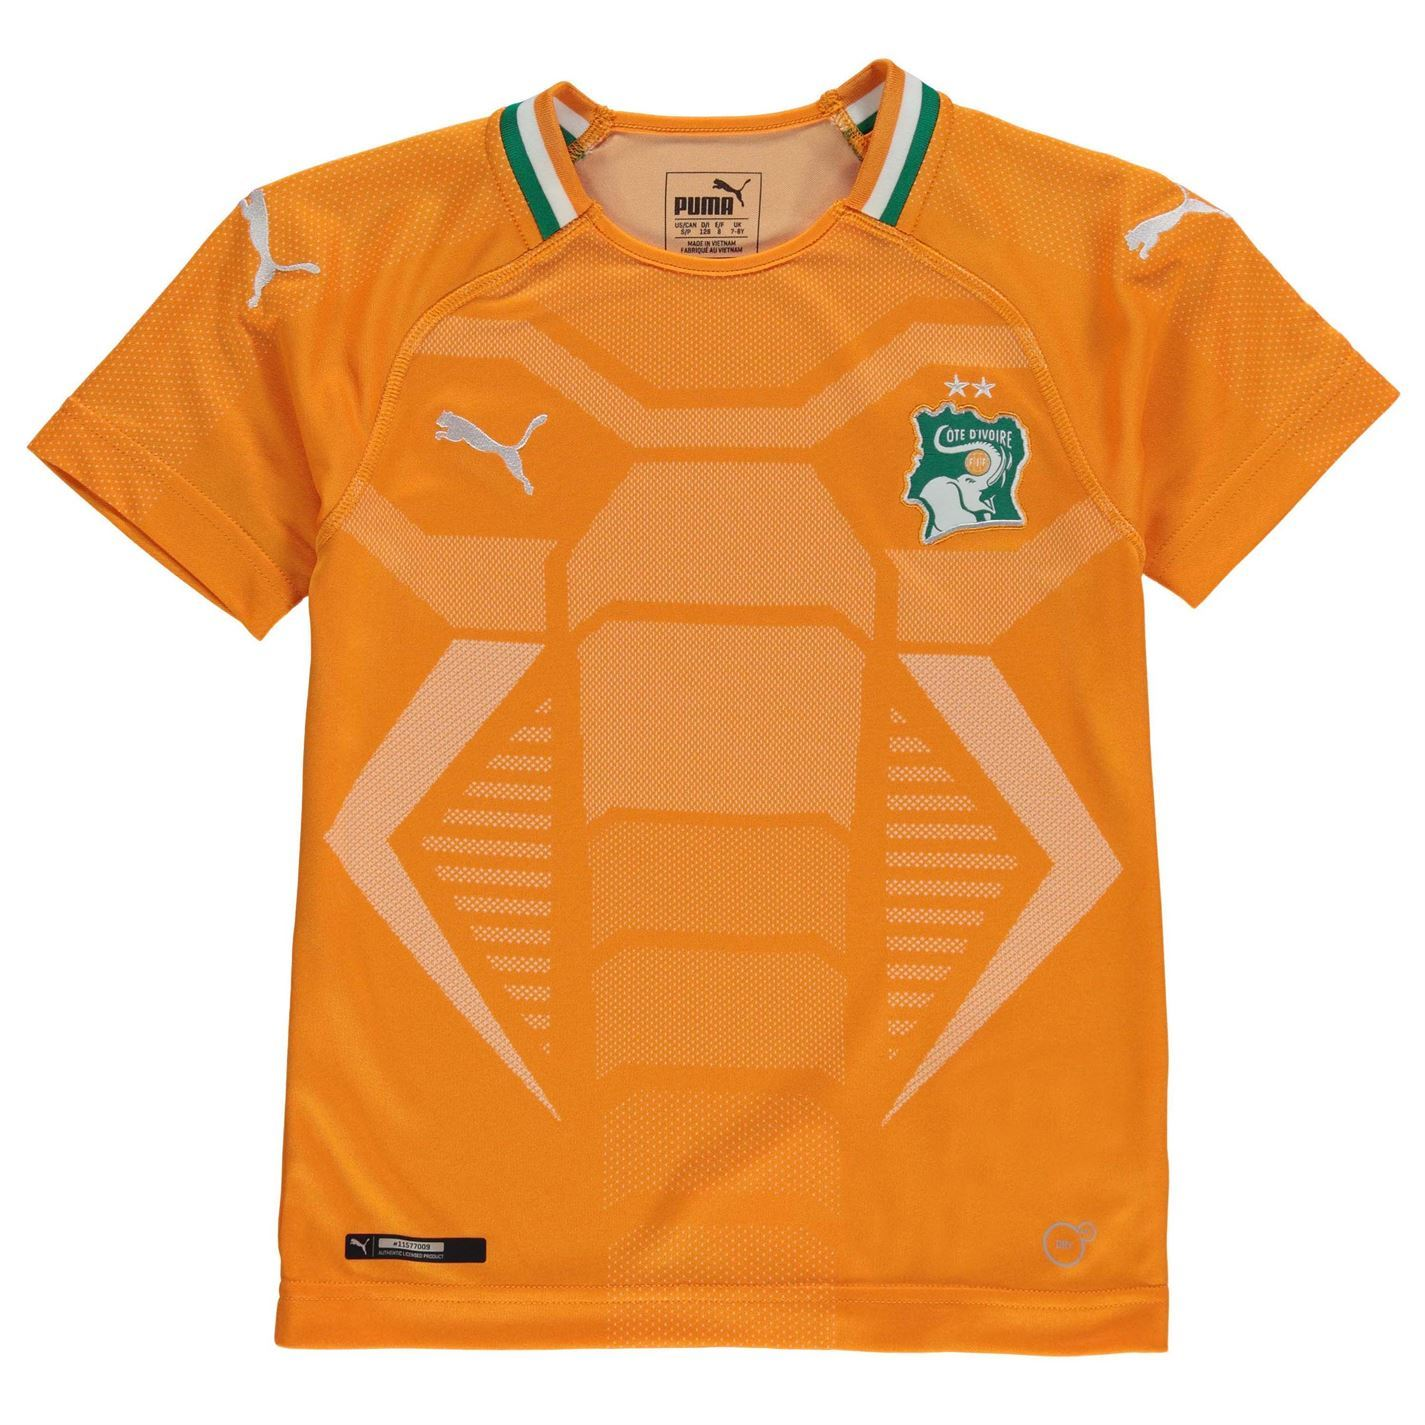 075e23cab Details about Puma Ivory Coast Home Jersey 2018 Juniors Orange Green  Football Soccer Shirt Top